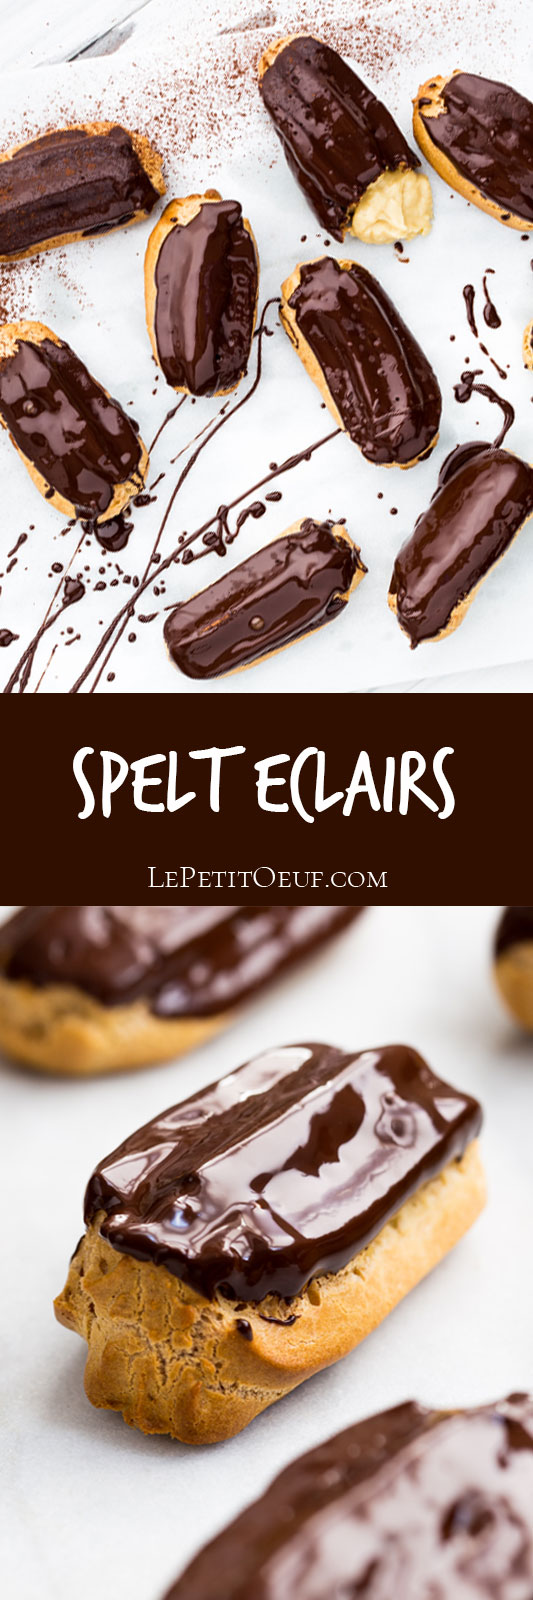 Spelt eclairs are a beautiful baked treat made with my spelt choux paste and stuffed with my dairy free pastry cream. Don't be afraid, these hollow buns are a patisserie favourite which can extend your knowledge of baking without stressing you out!